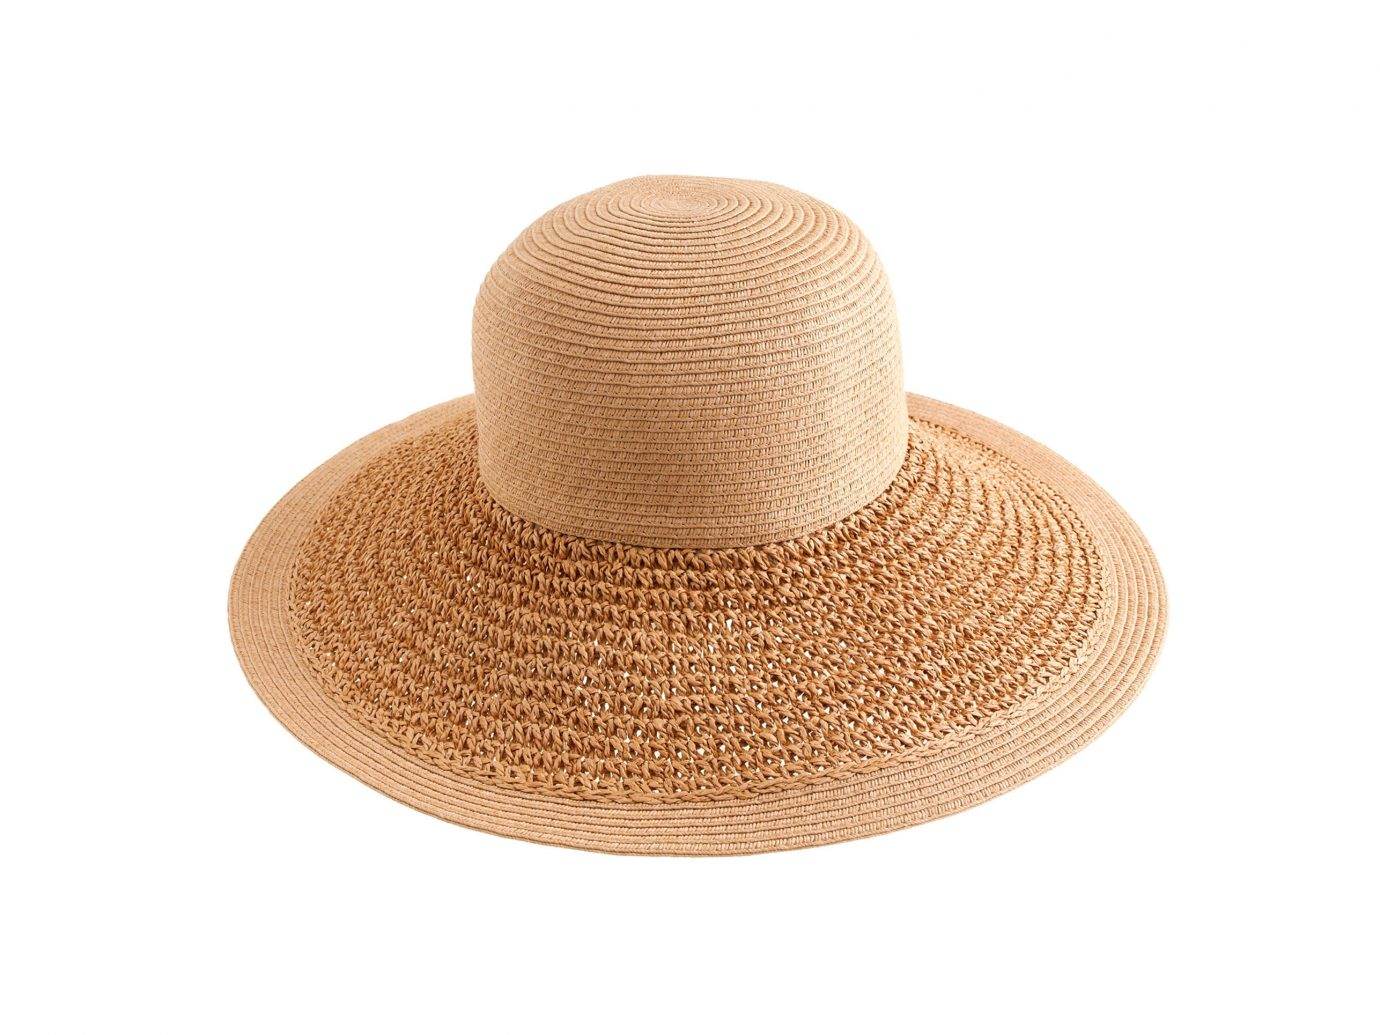 Style + Design clothing hat straw sun hat fashion accessory headdress fedora agriculture old cap headgear cowboy hat beige